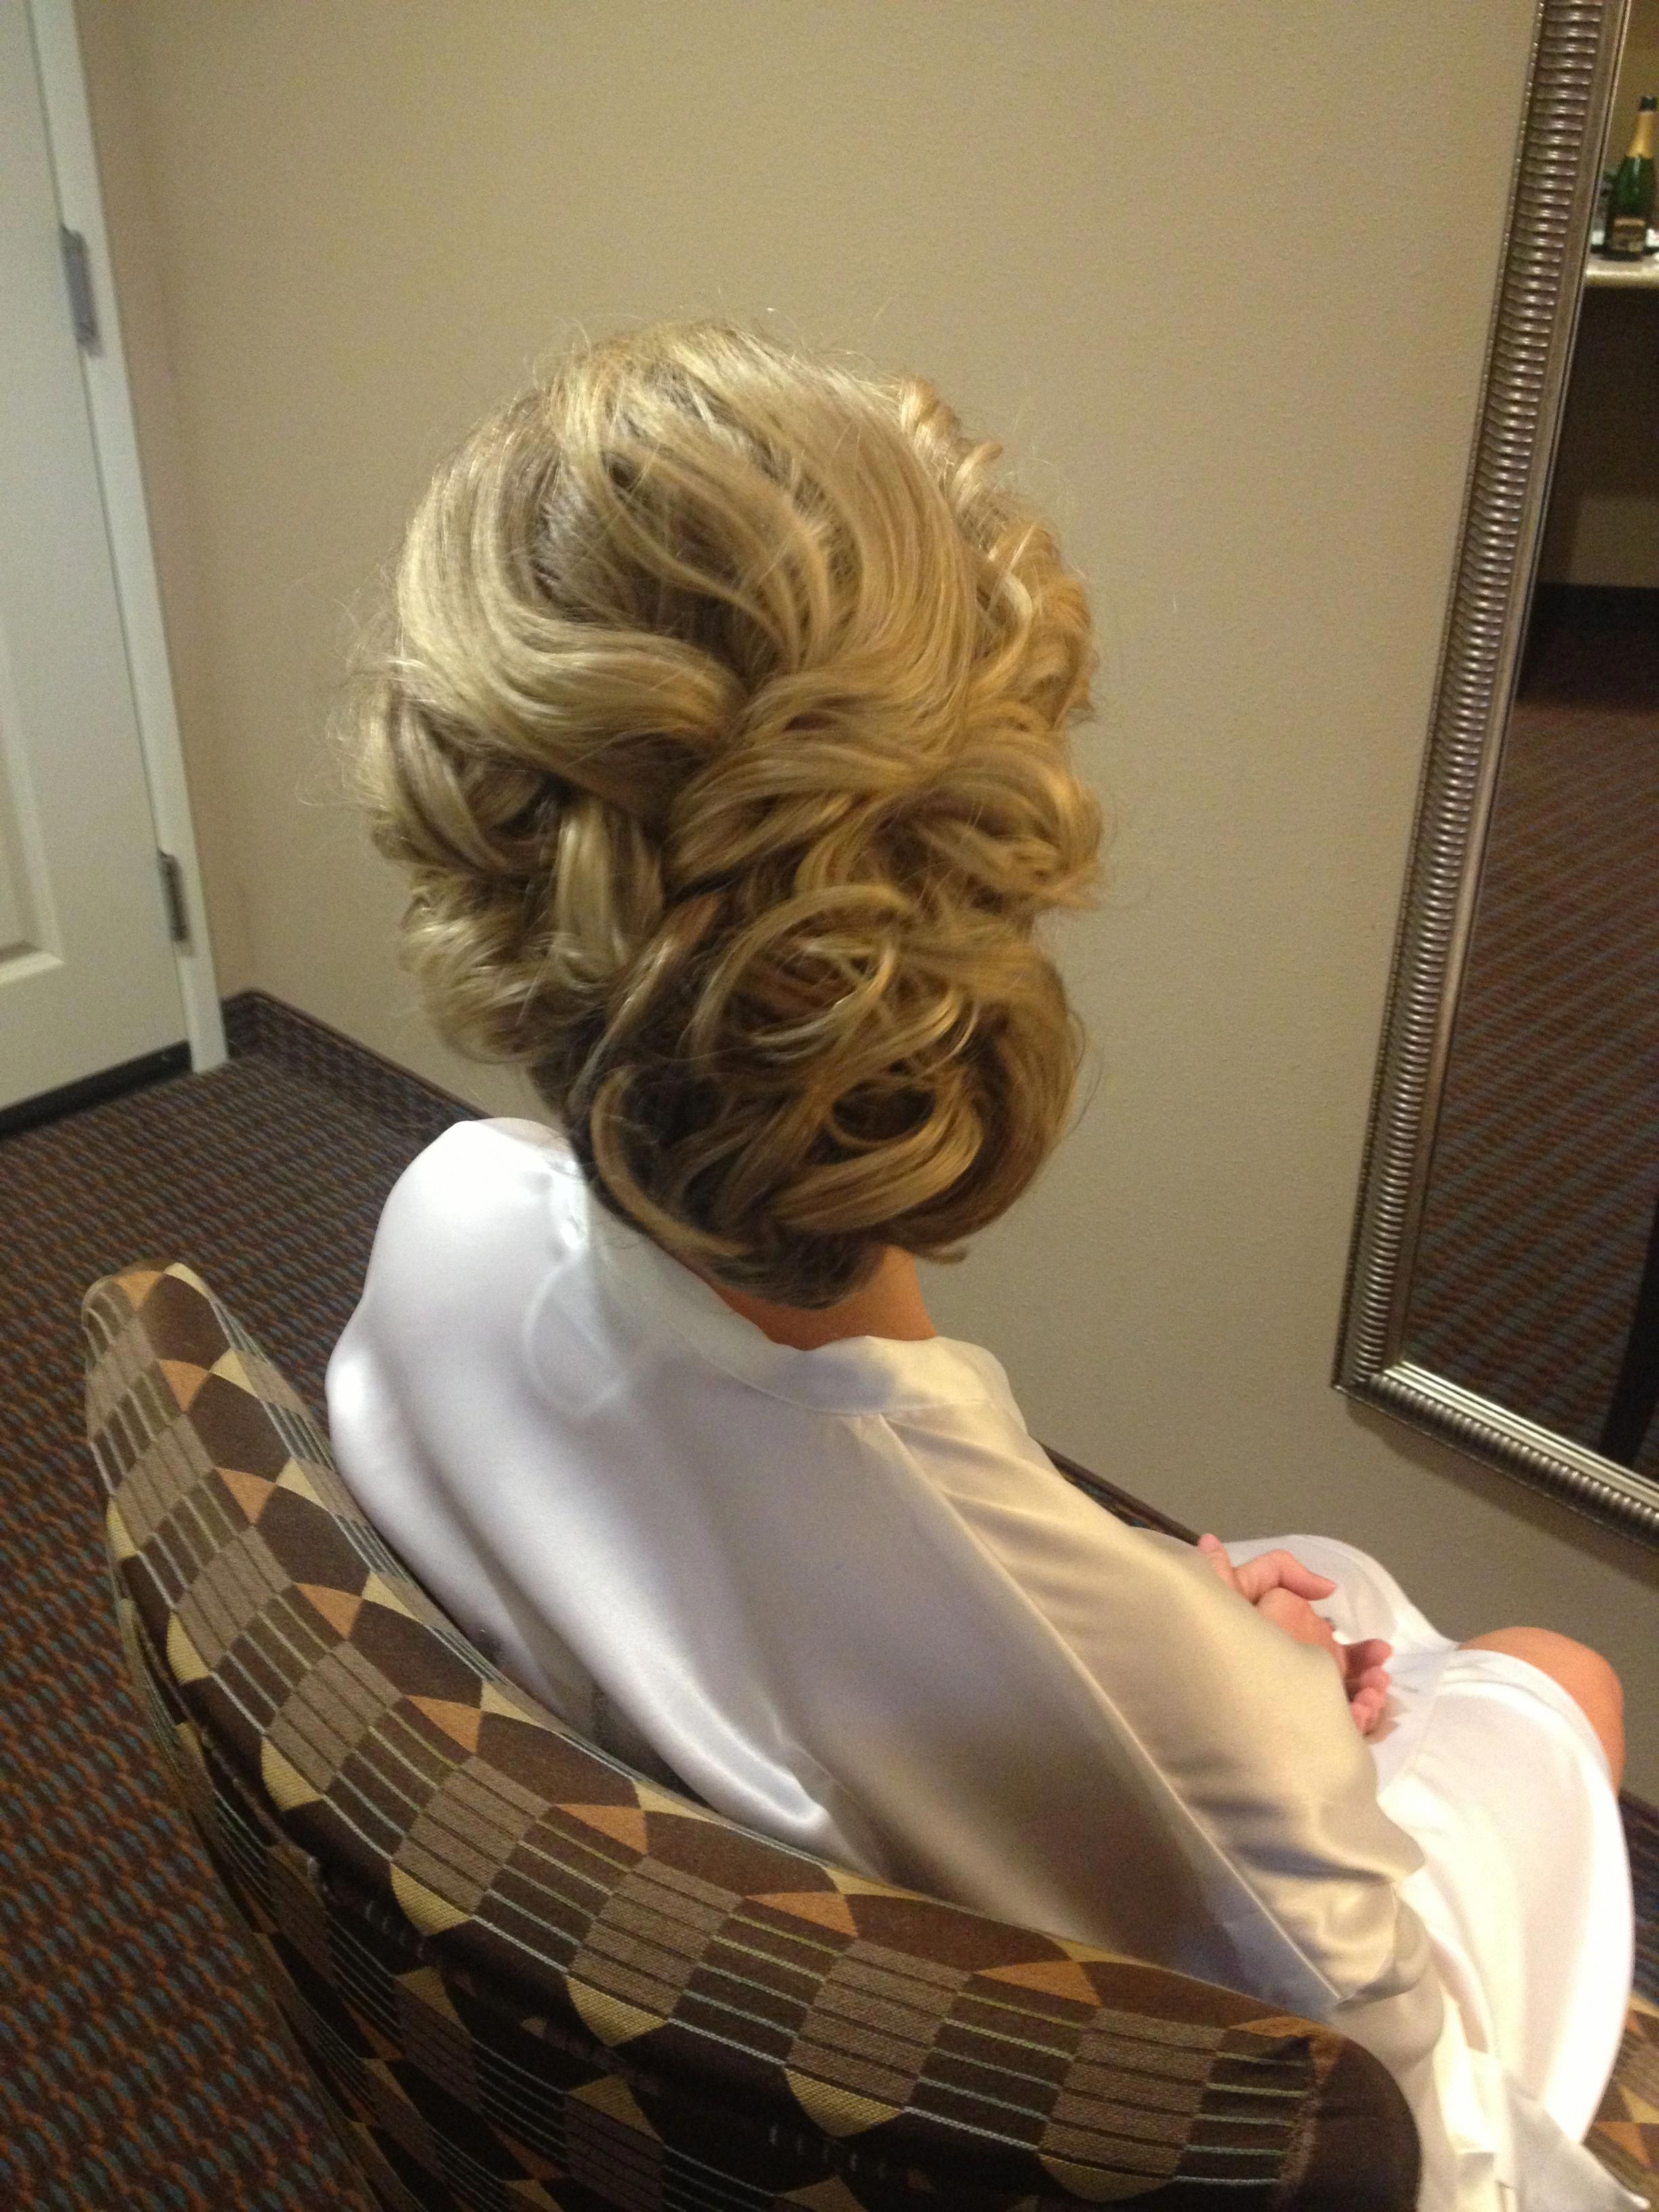 Top Middle Is Voluminous And In Loose/thick Fishtail; Sides Twisted Regarding Favorite Voluminous Chignon Wedding Hairstyles With Twists (View 17 of 20)